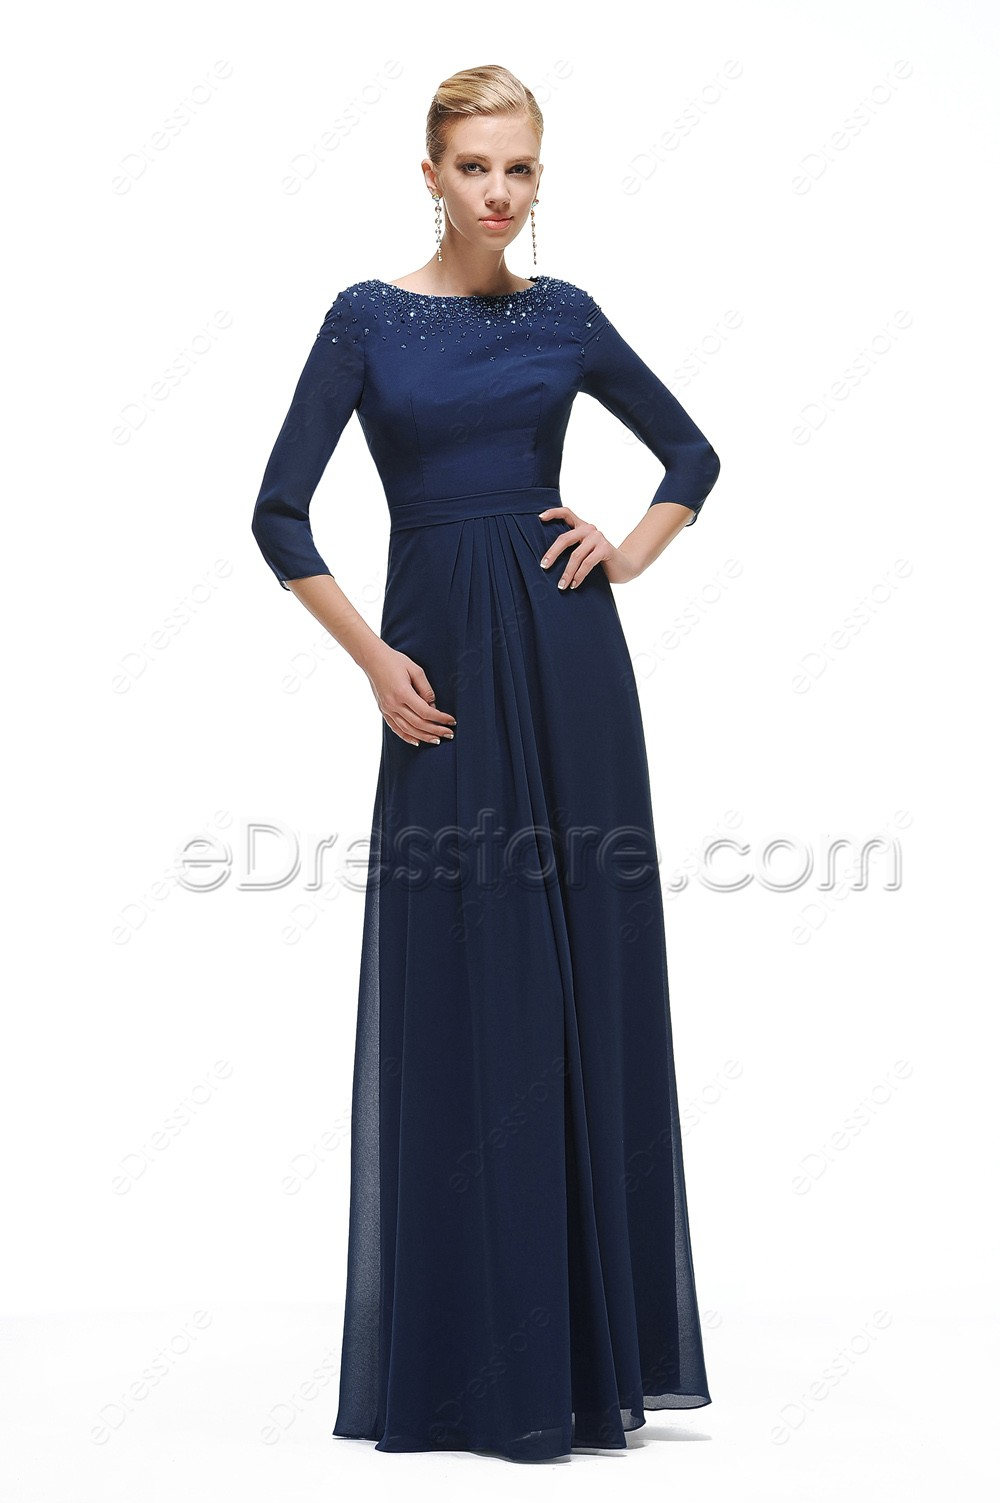 Navy Blue Modest Prom Dress With Sleeves Beaded Neckline